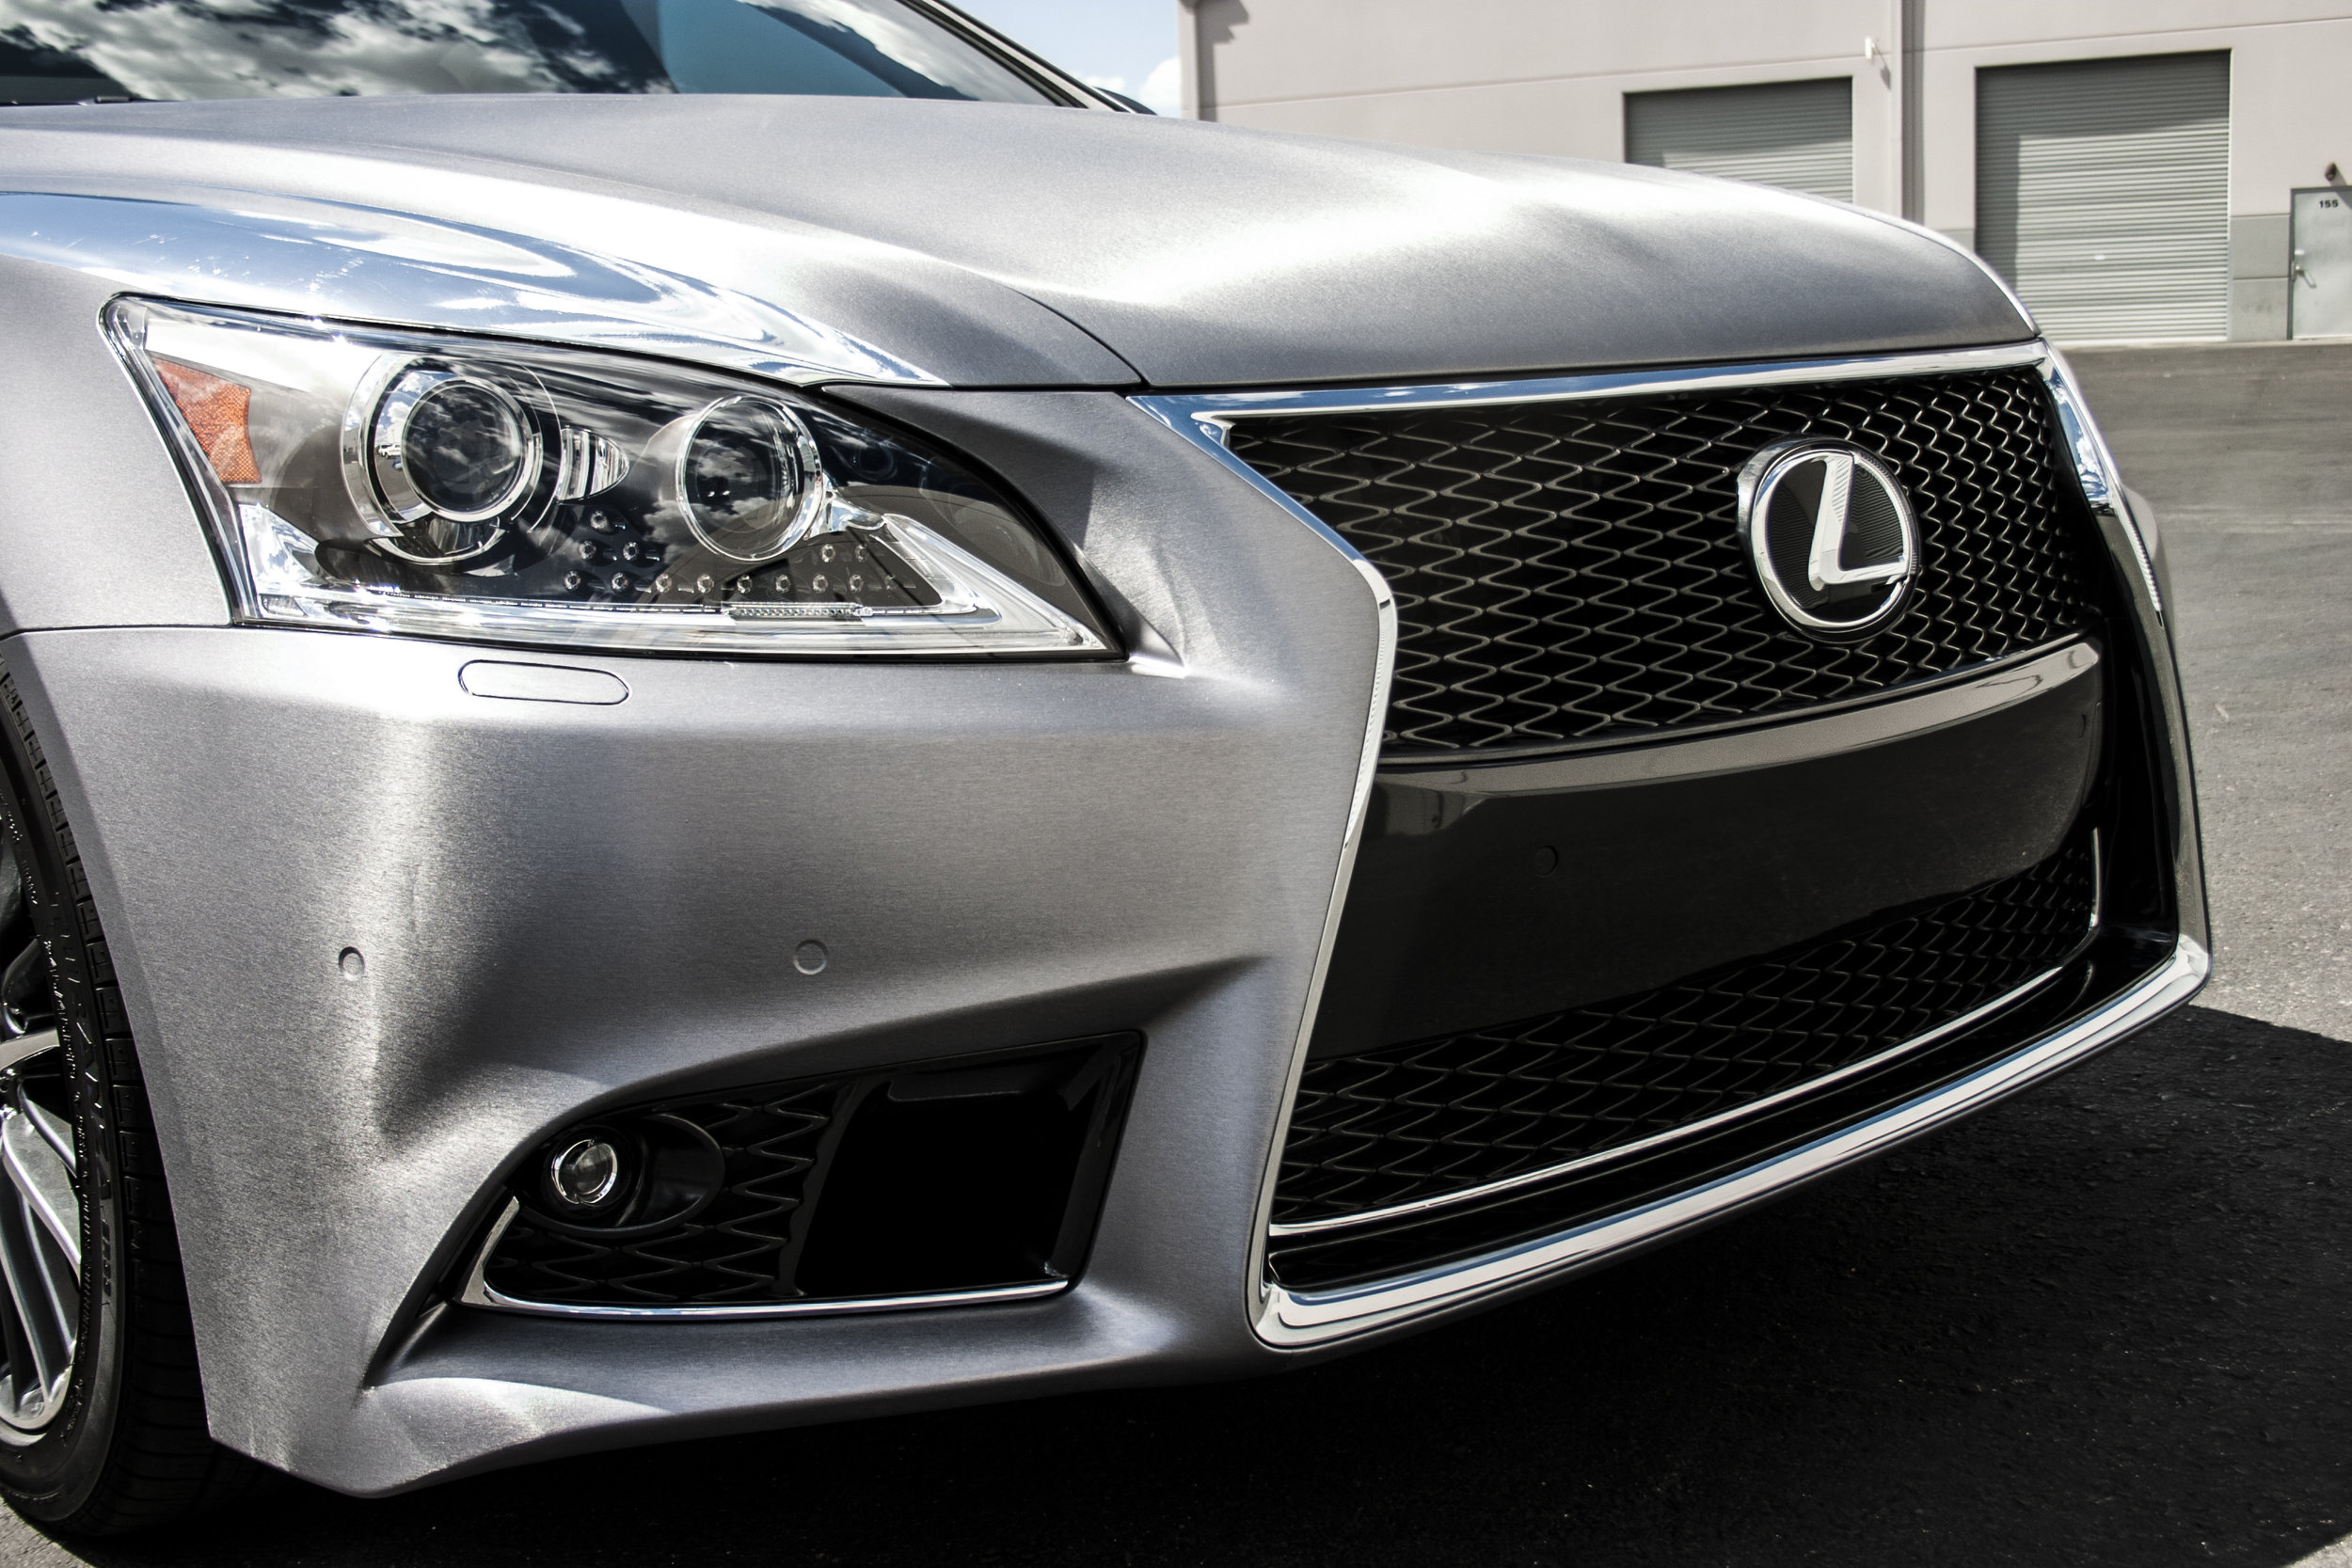 Lexus LS460 Brushed Steel